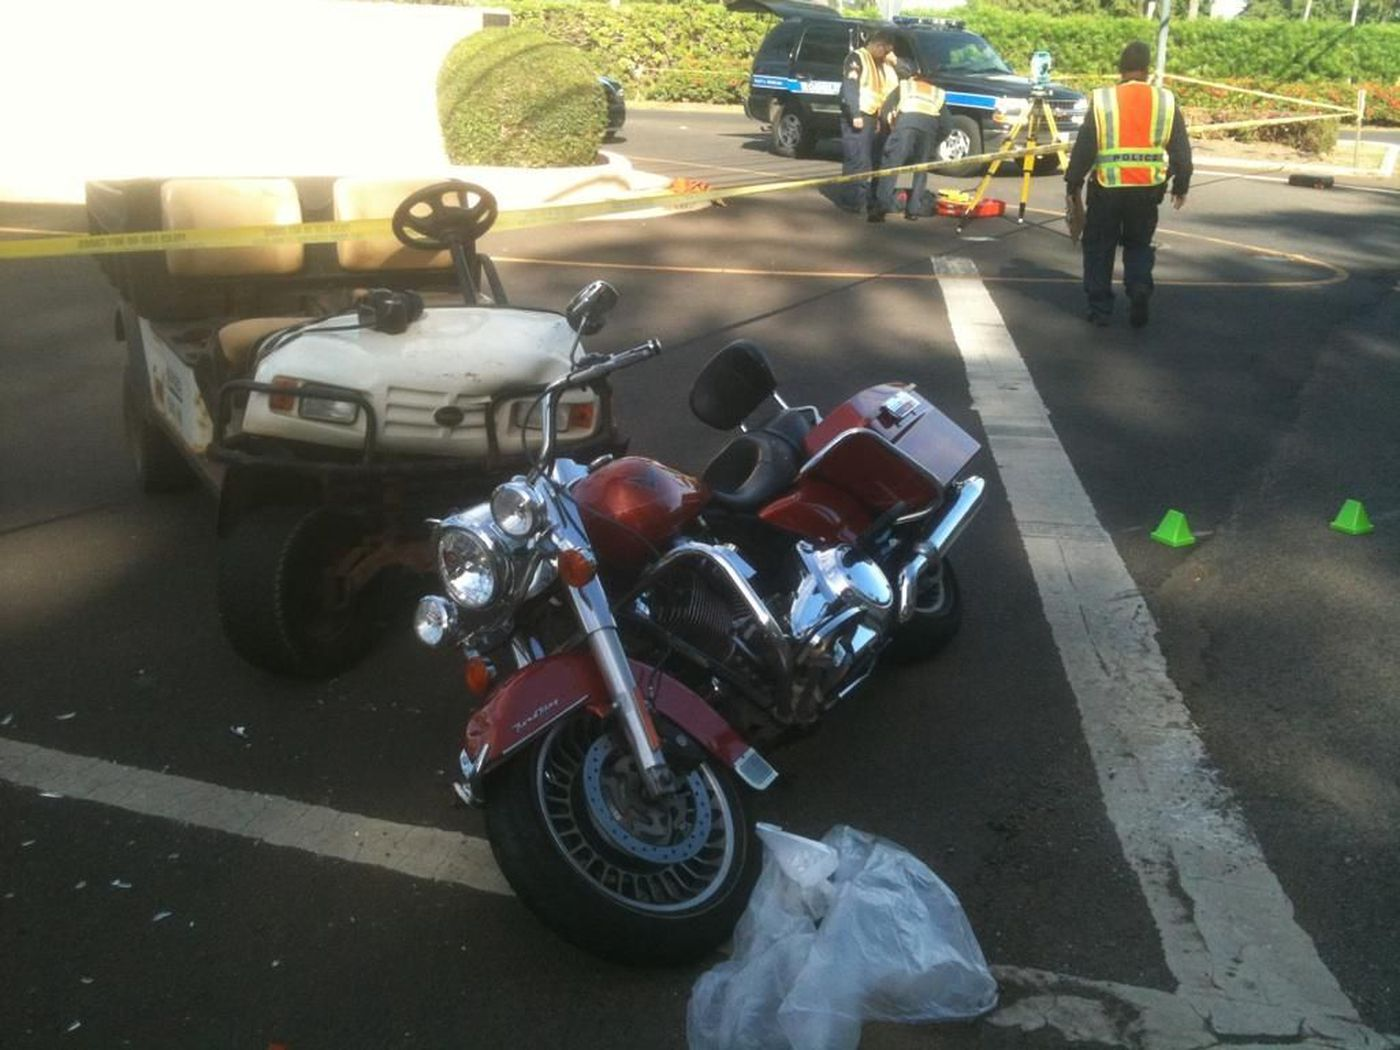 Two hospitalized in motorcycle crash near Turtle Bay